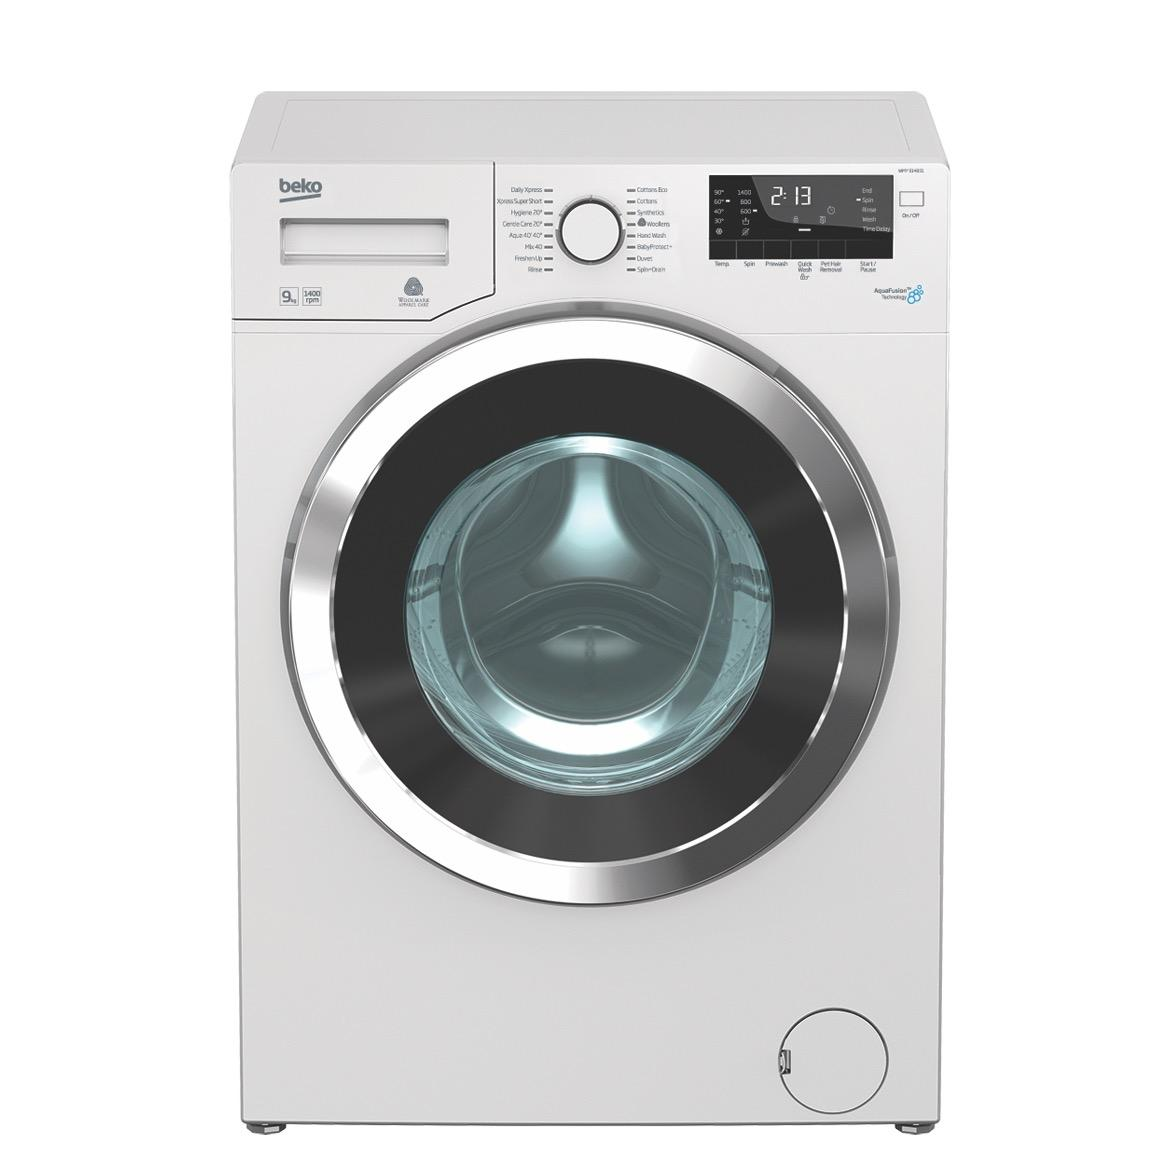 Recent Beko 9Kg Washer With Aquawave™ Technology Wmy 914831 Foc Delivery Basic Installation